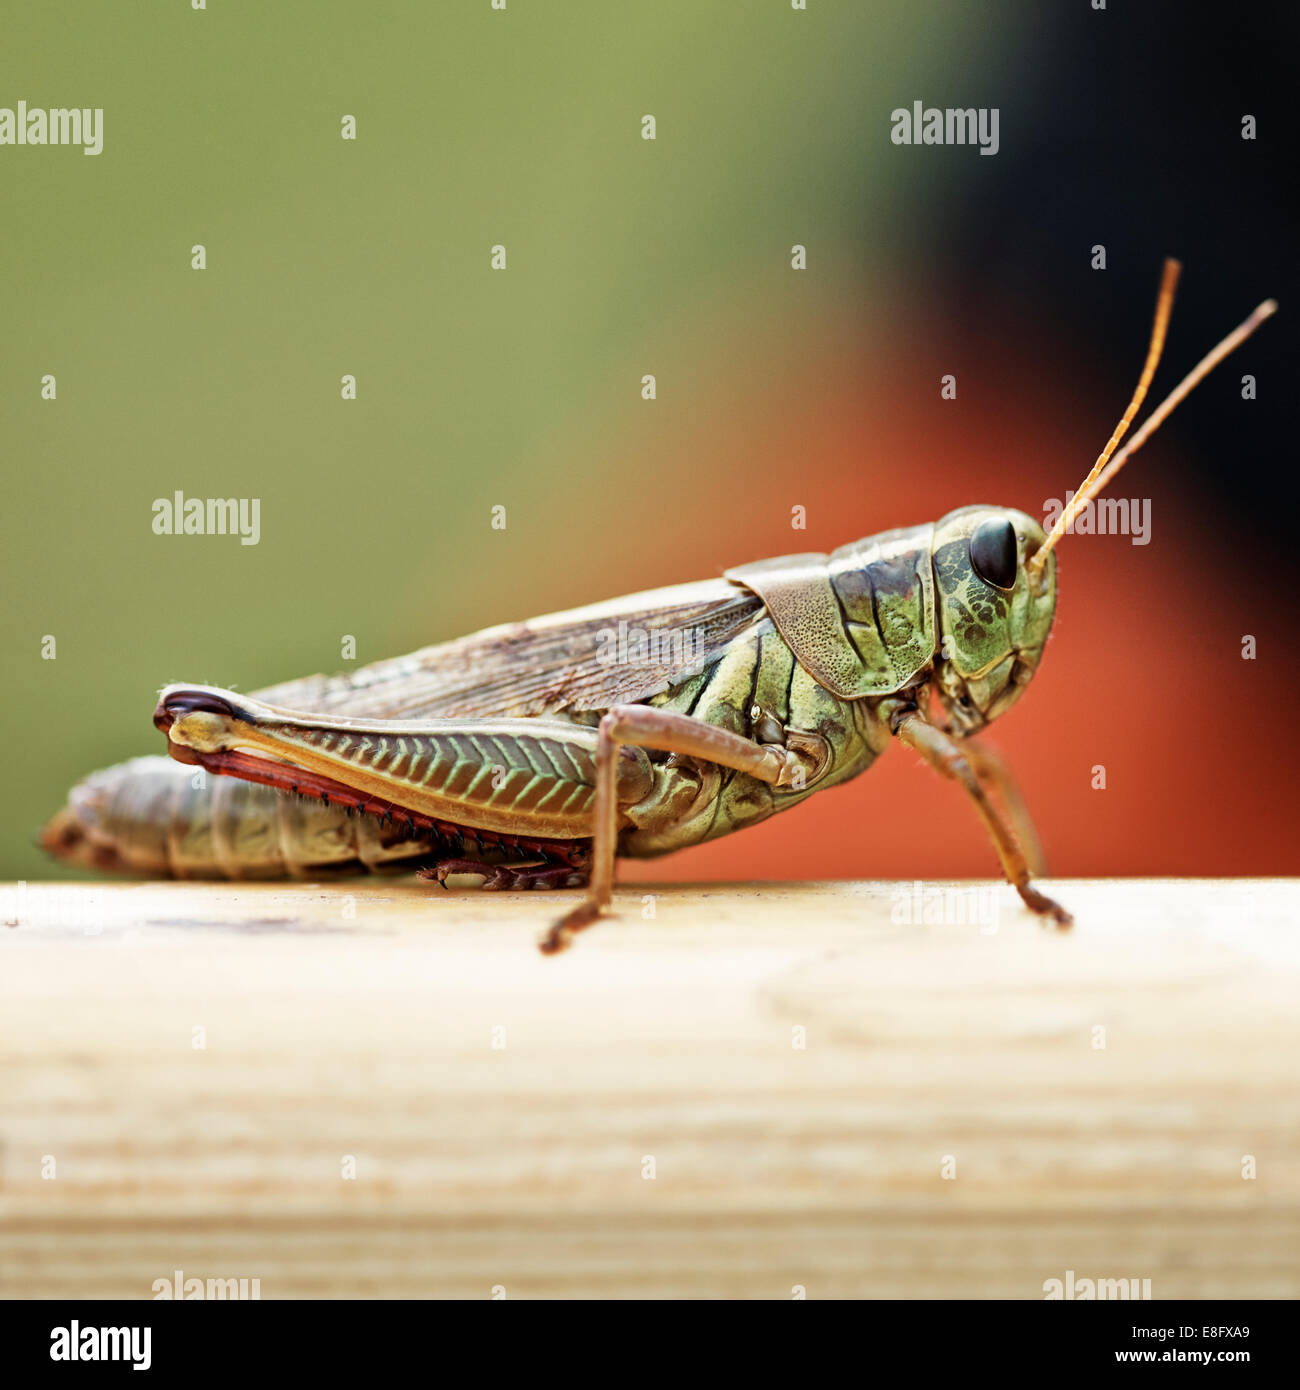 USA, New York State, Greene County, Town of Lexington, West Kill, Grasshopper in summer - Stock Image